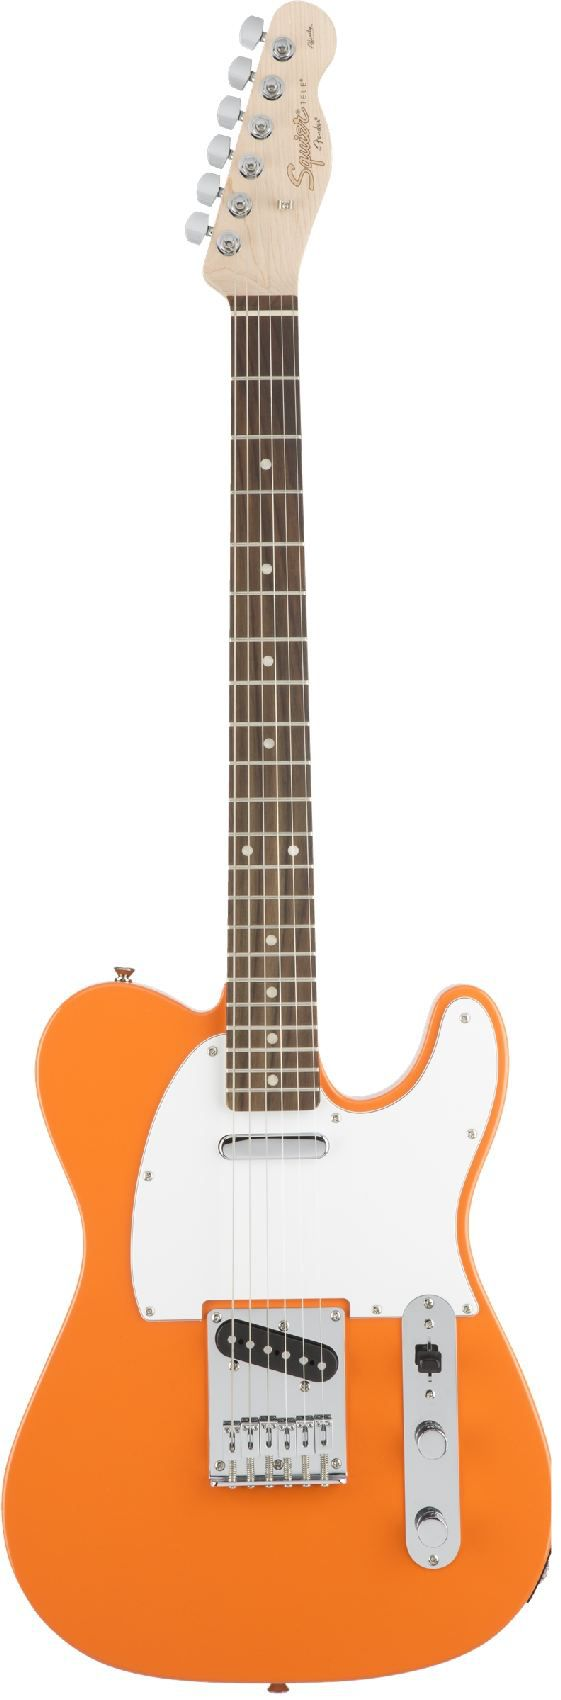 fender squier affinity series telecaster® rosewood fingerboard competition orange